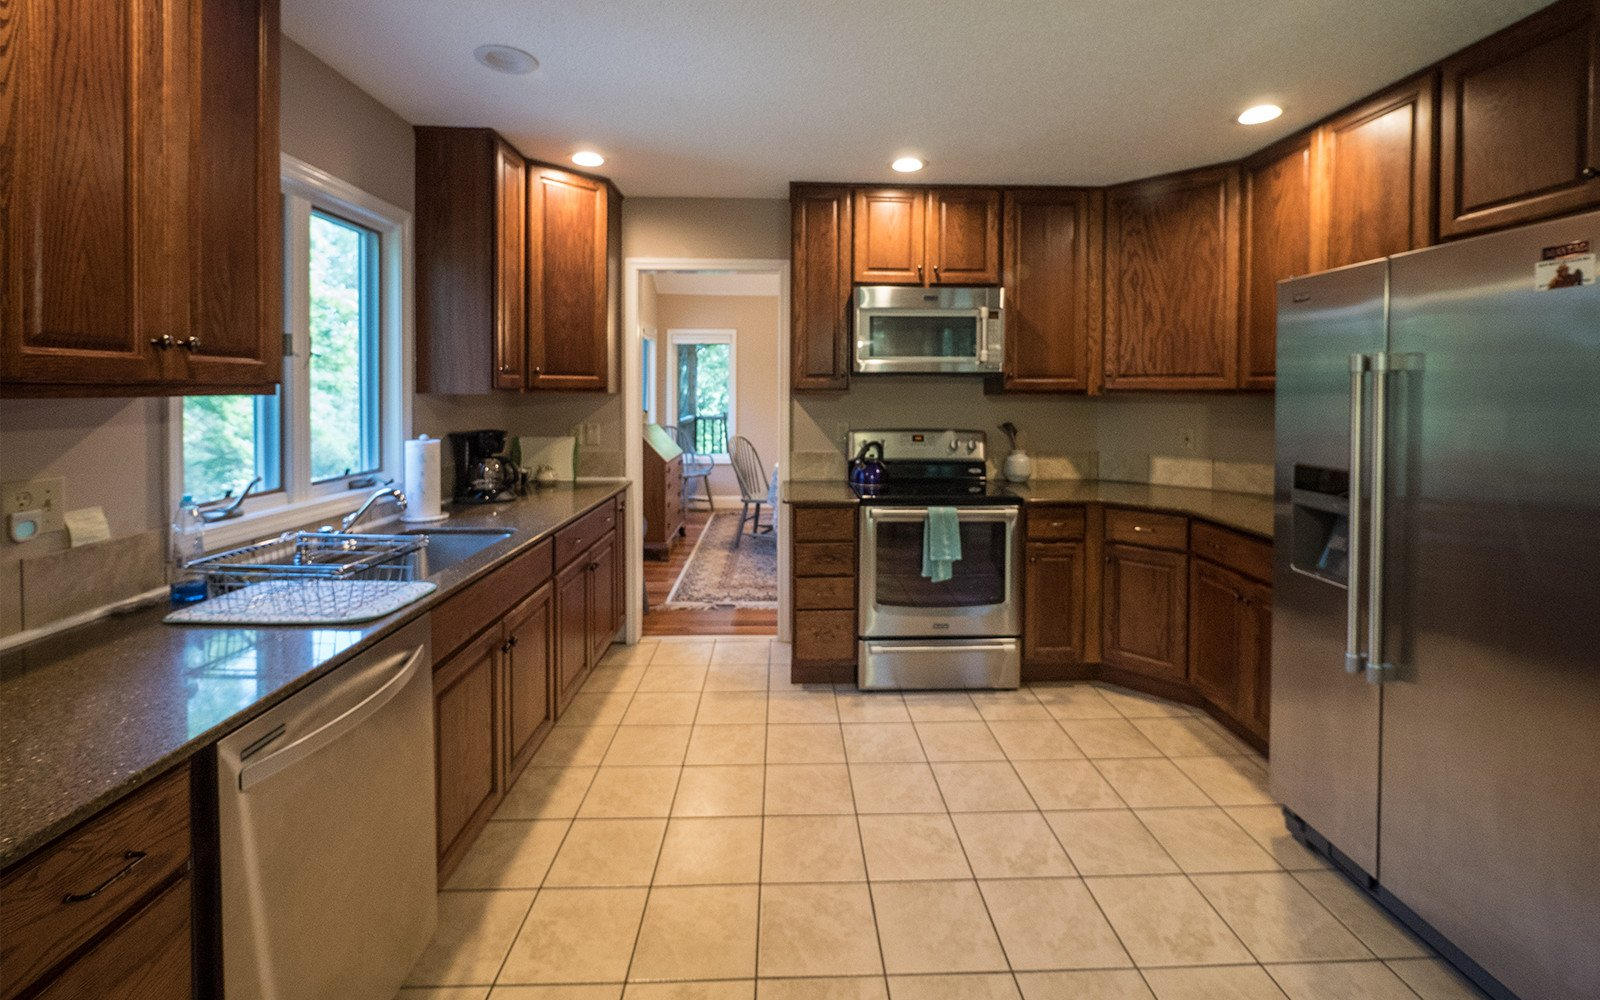 Hilt Street house kitchen - Vacation Houses in Brevard NC